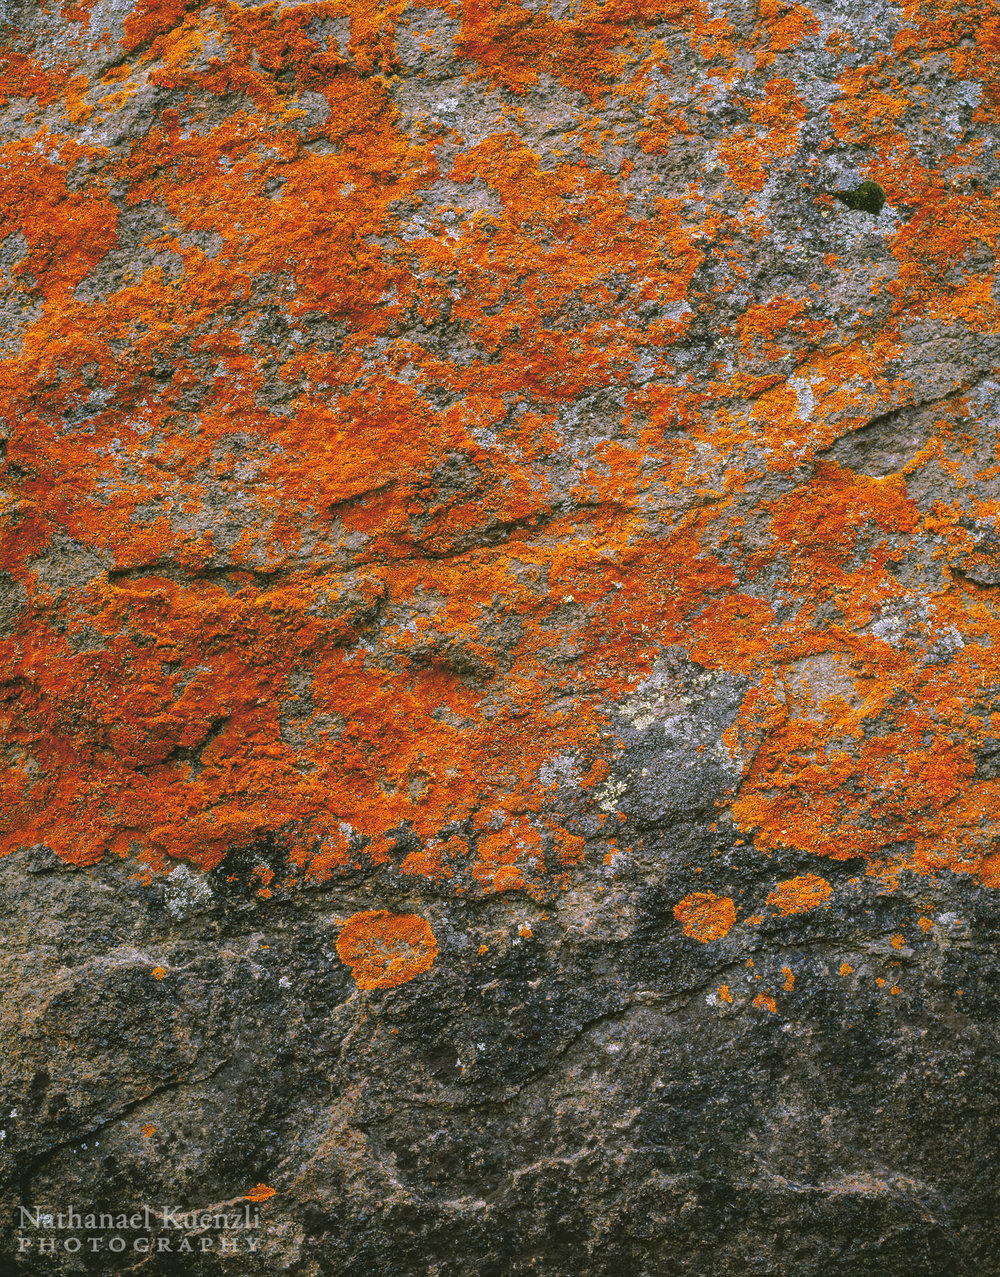 Lichen, Boundary Waters Canoe Area Wilderness, Minnesota, October 2005